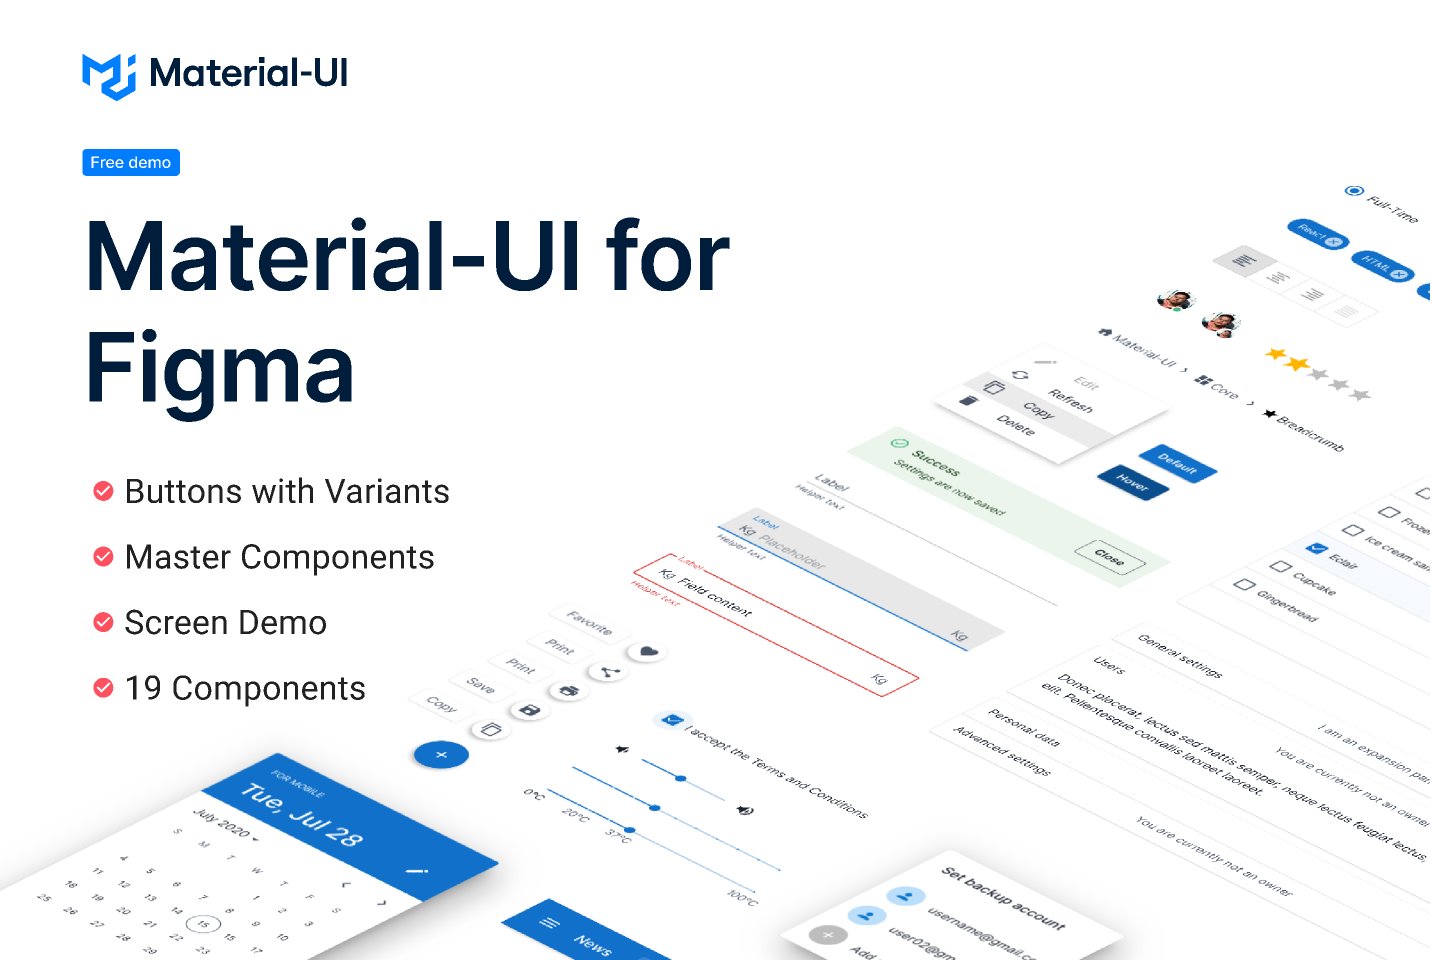 Material-UI for Figma (Free Demo)